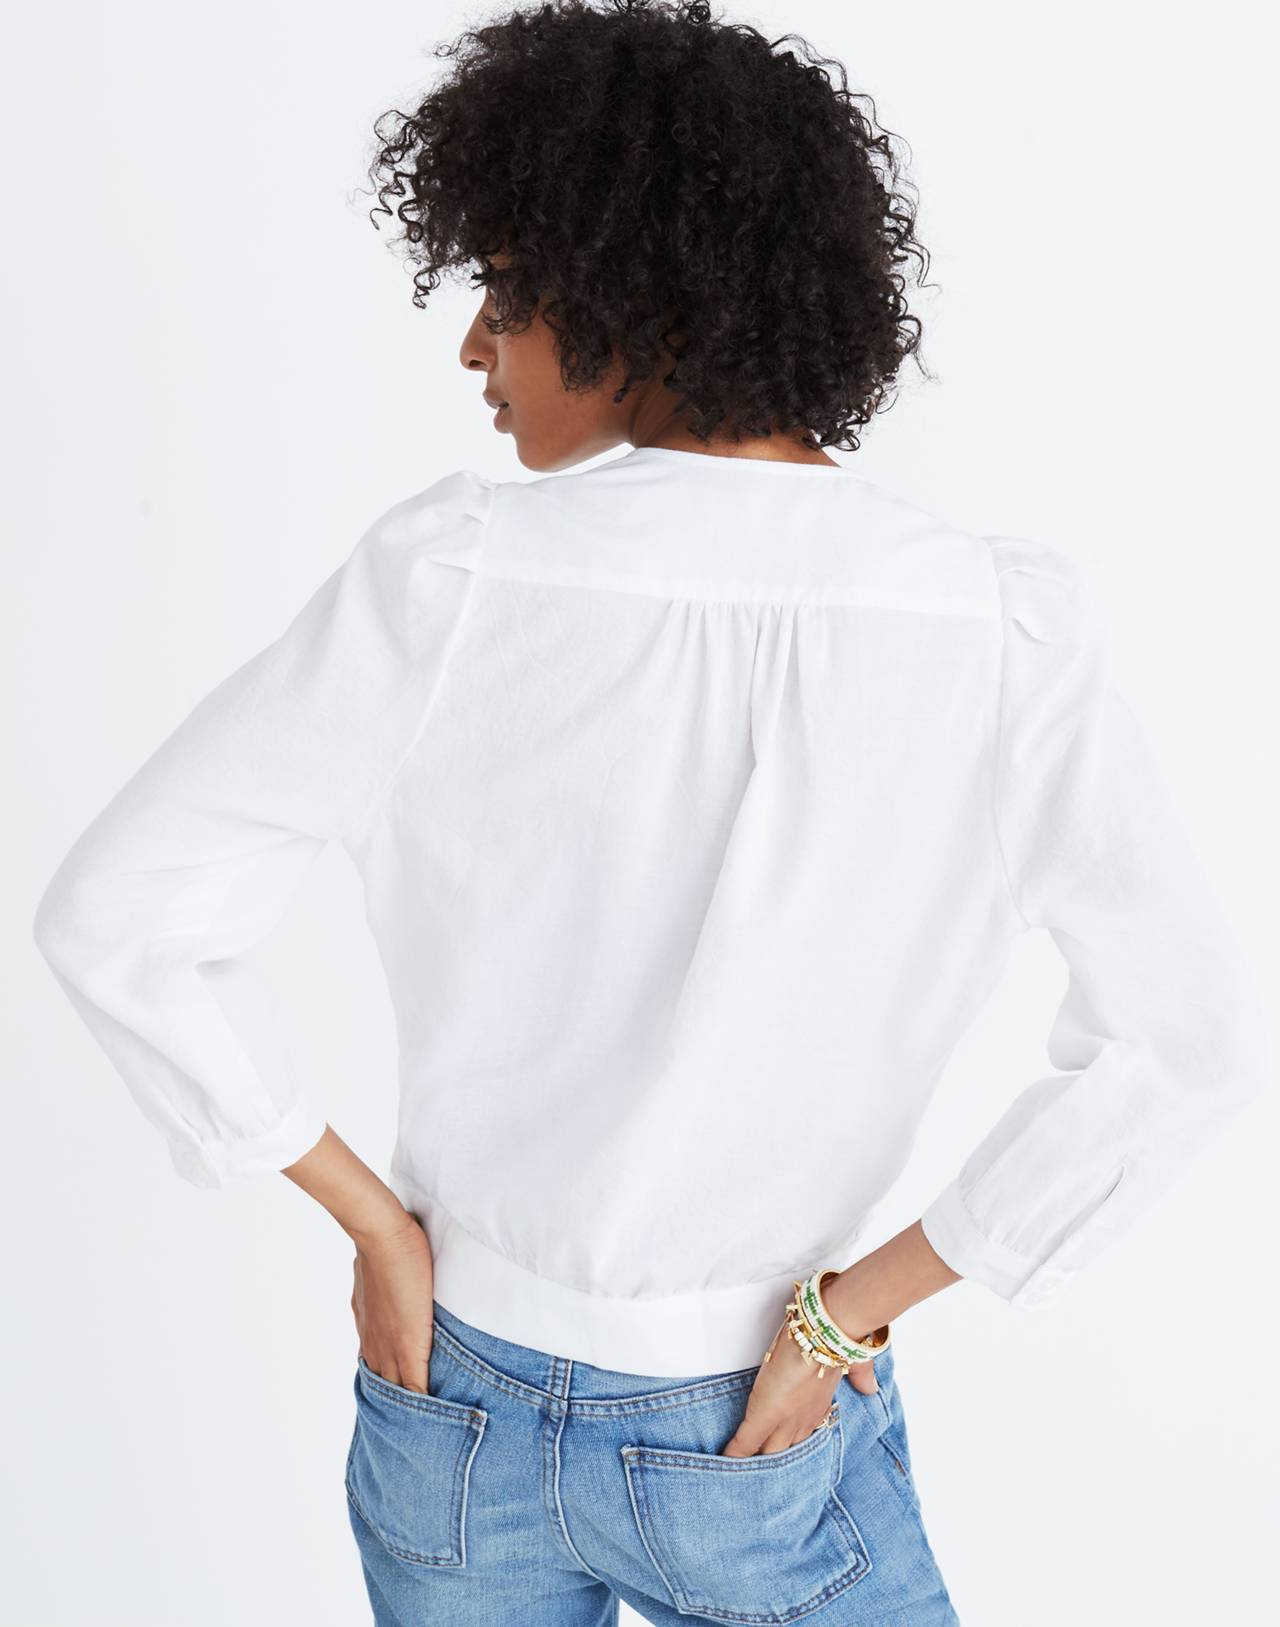 Wrap Top in Eyelet White in eyelet white image 3